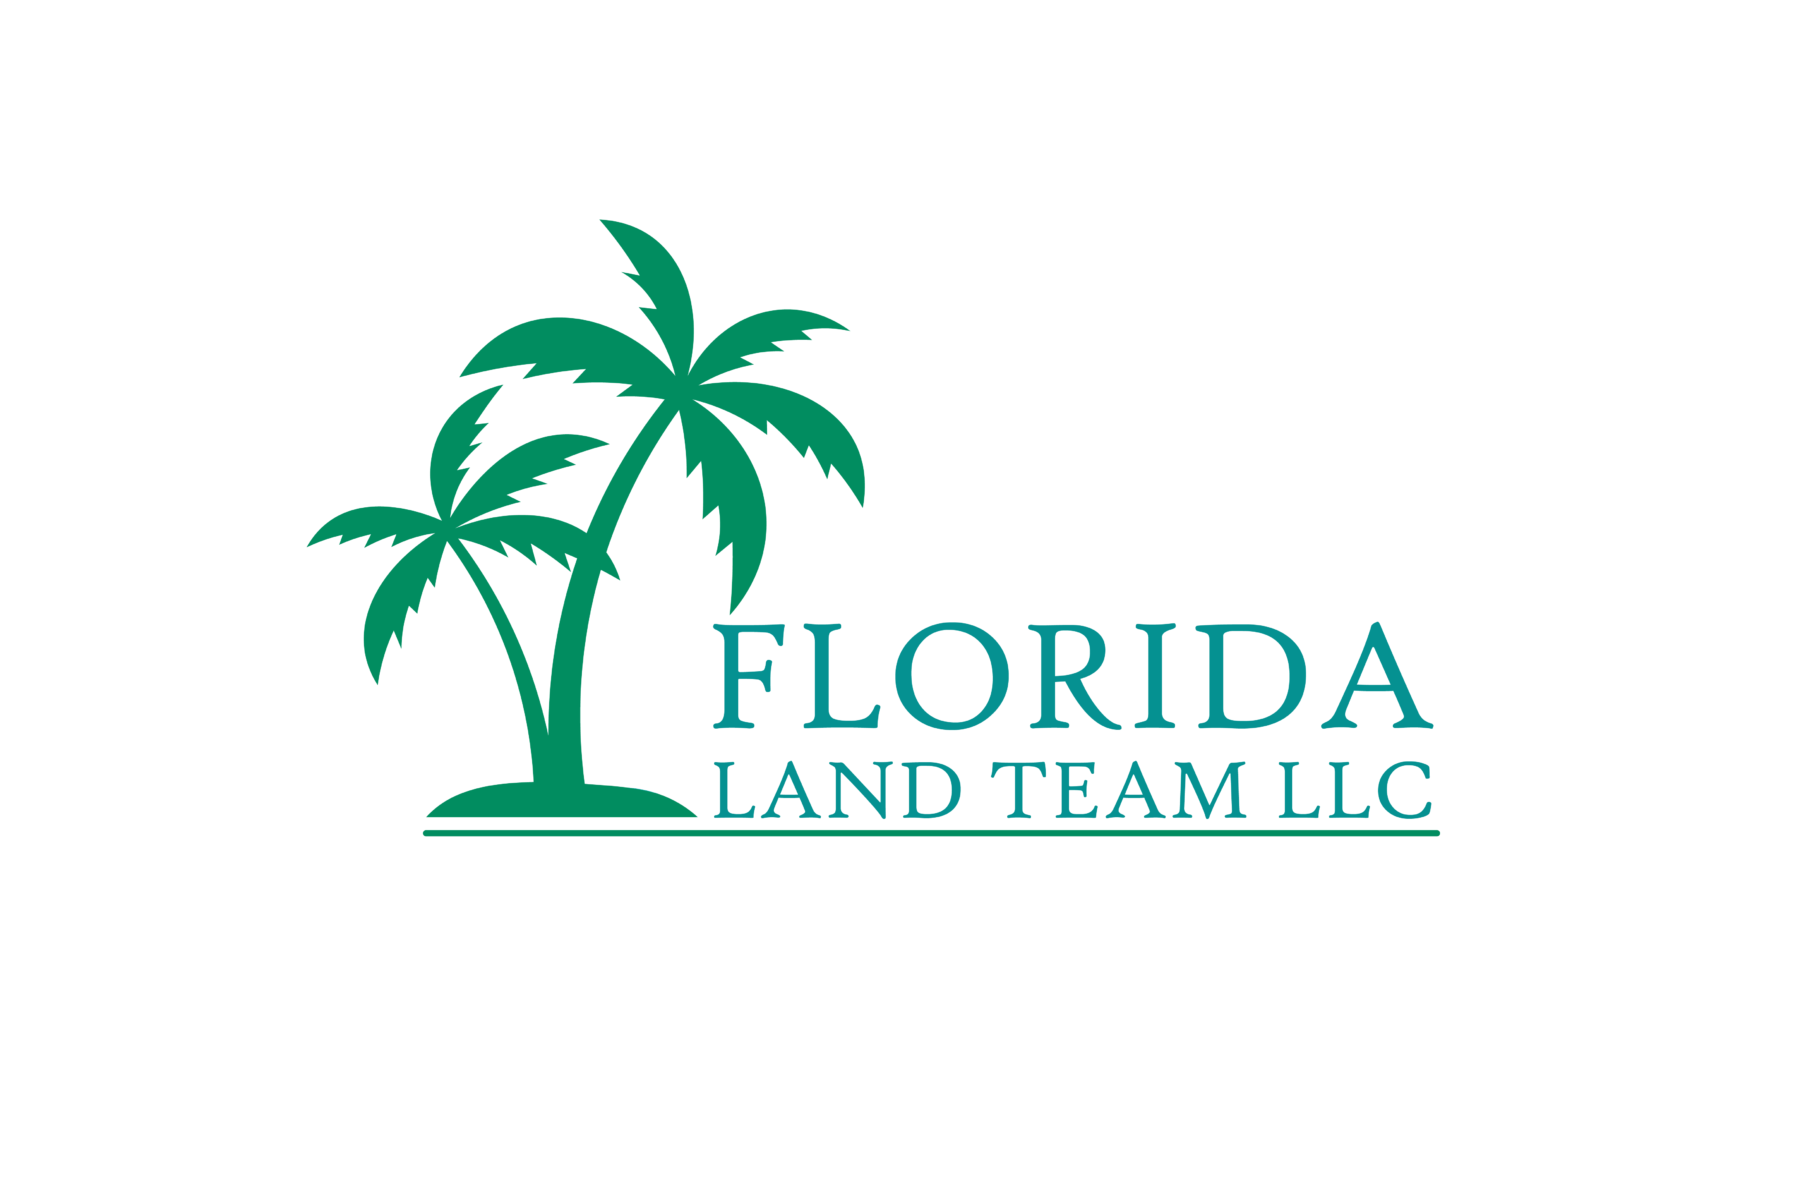 The Florida Land Team logo